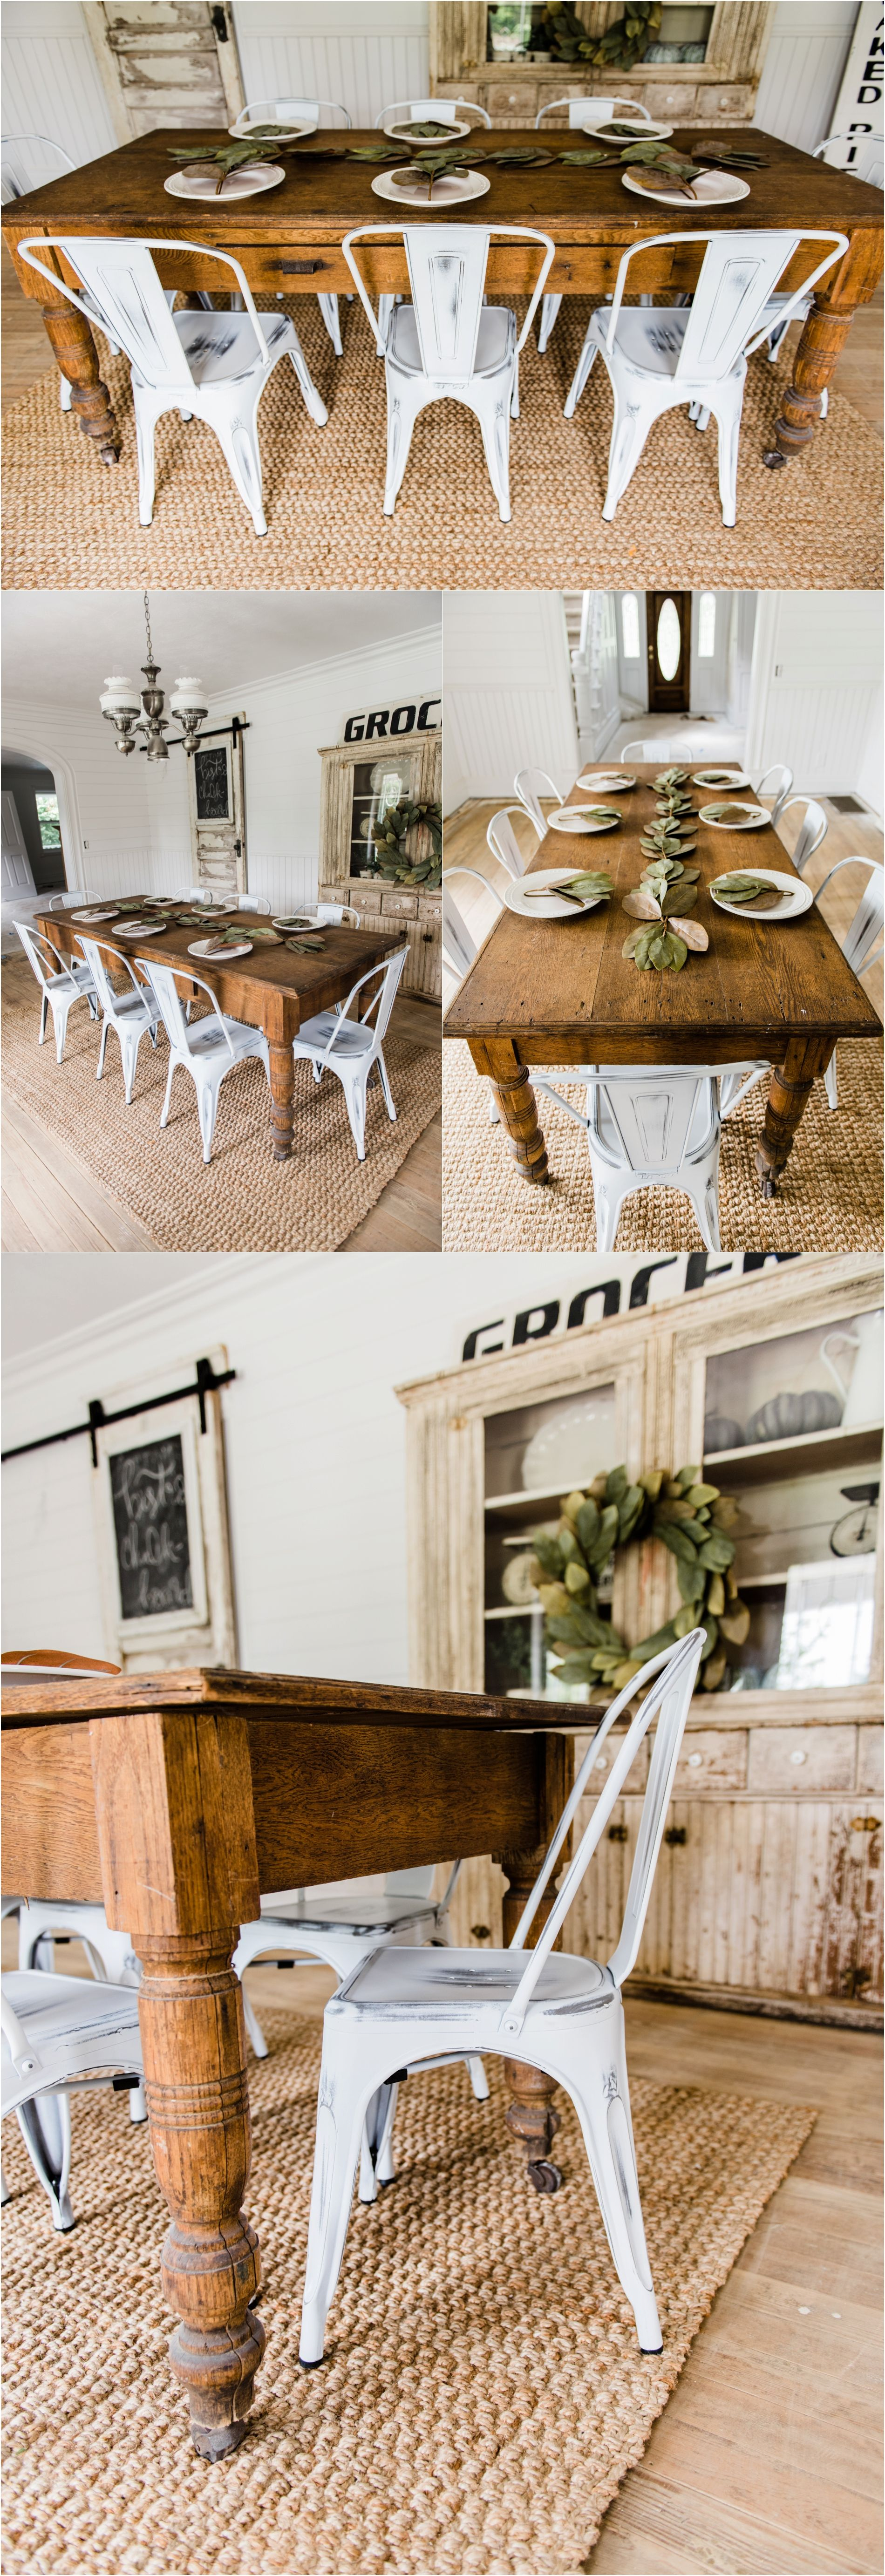 New farmhouse dining chairs white farmhouse metal chairs and